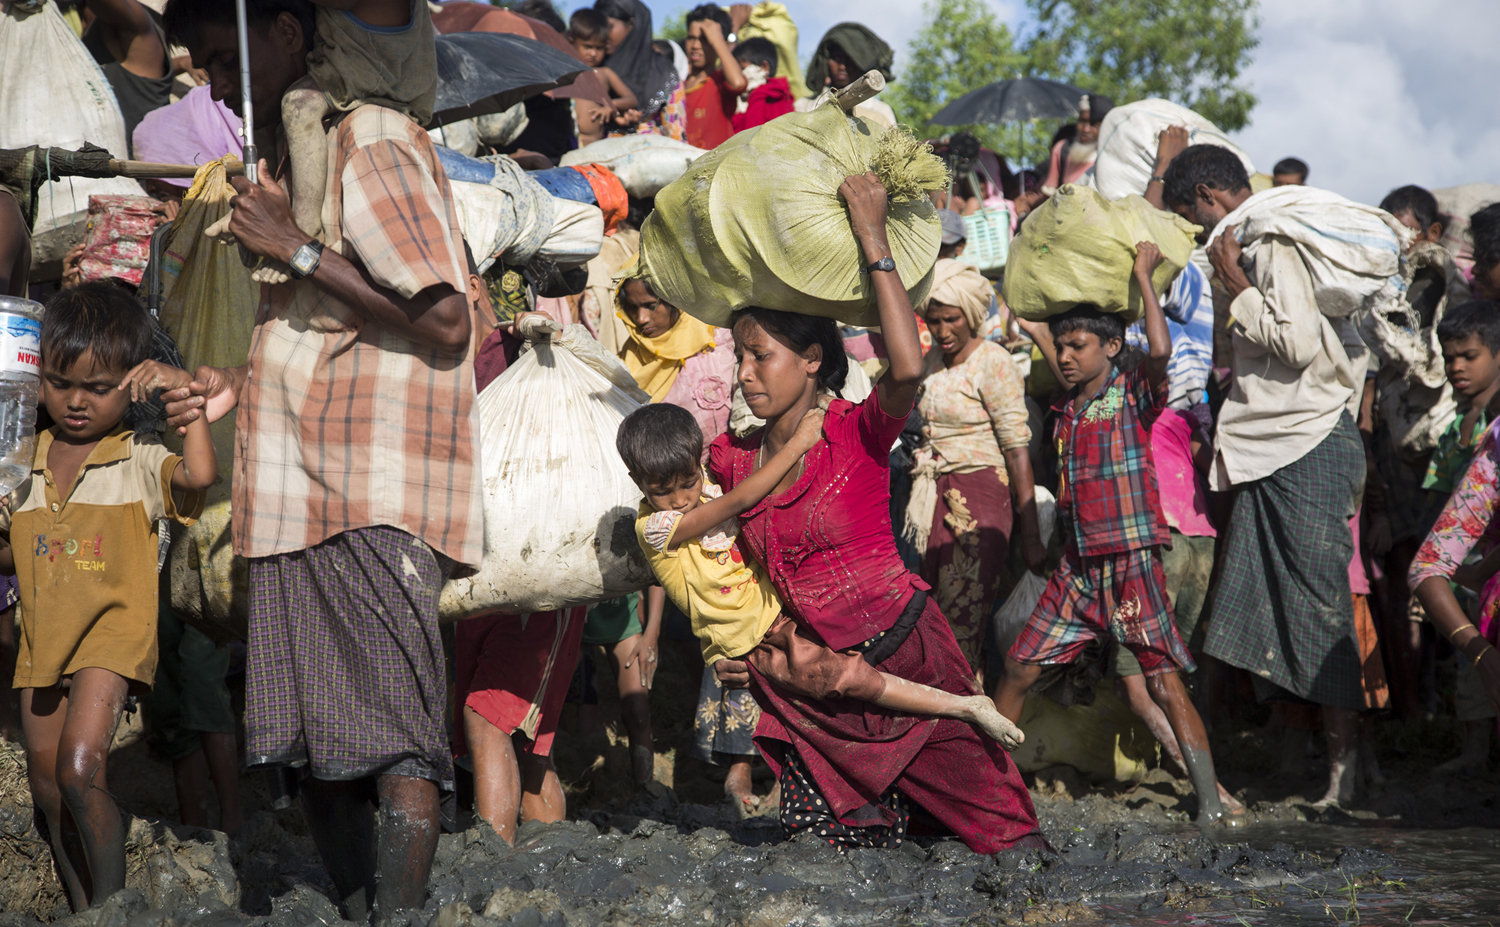 700,000 Rohingya sought safety in Bangladesh